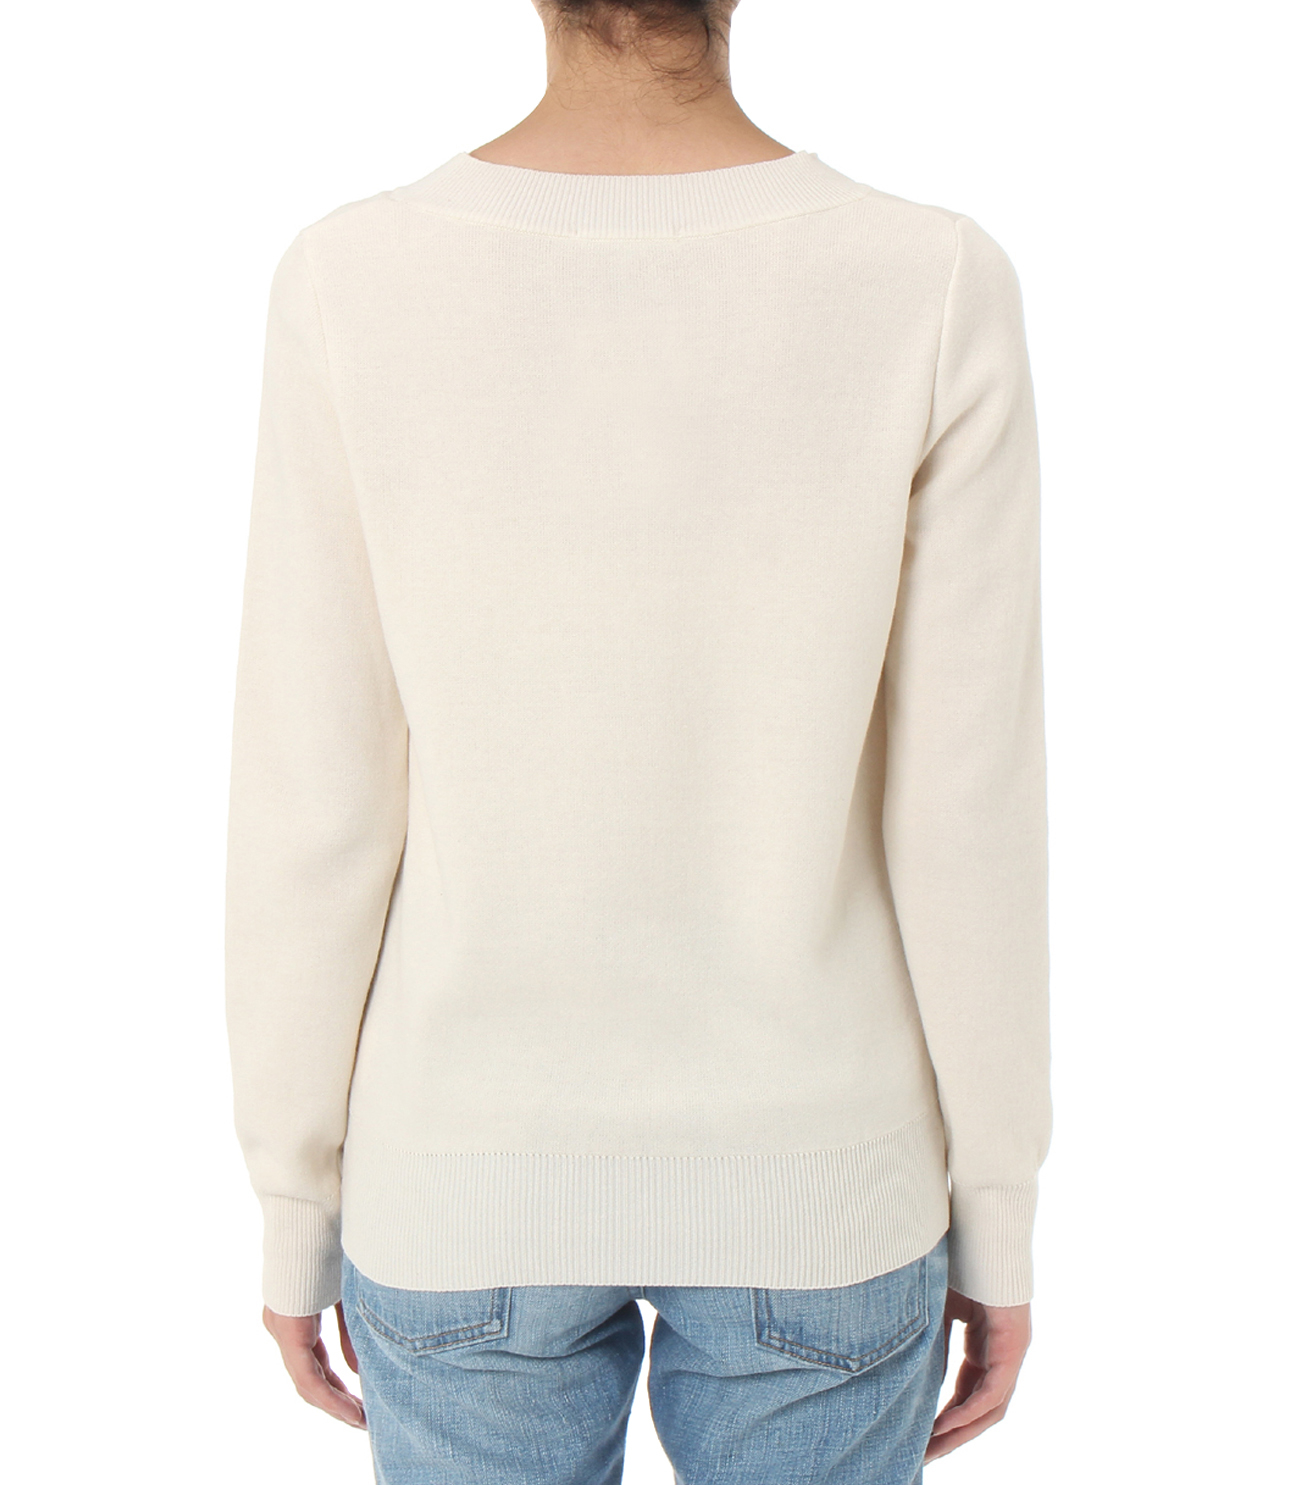 warm cotton l/s crew neck 詳細画像 ivory 4